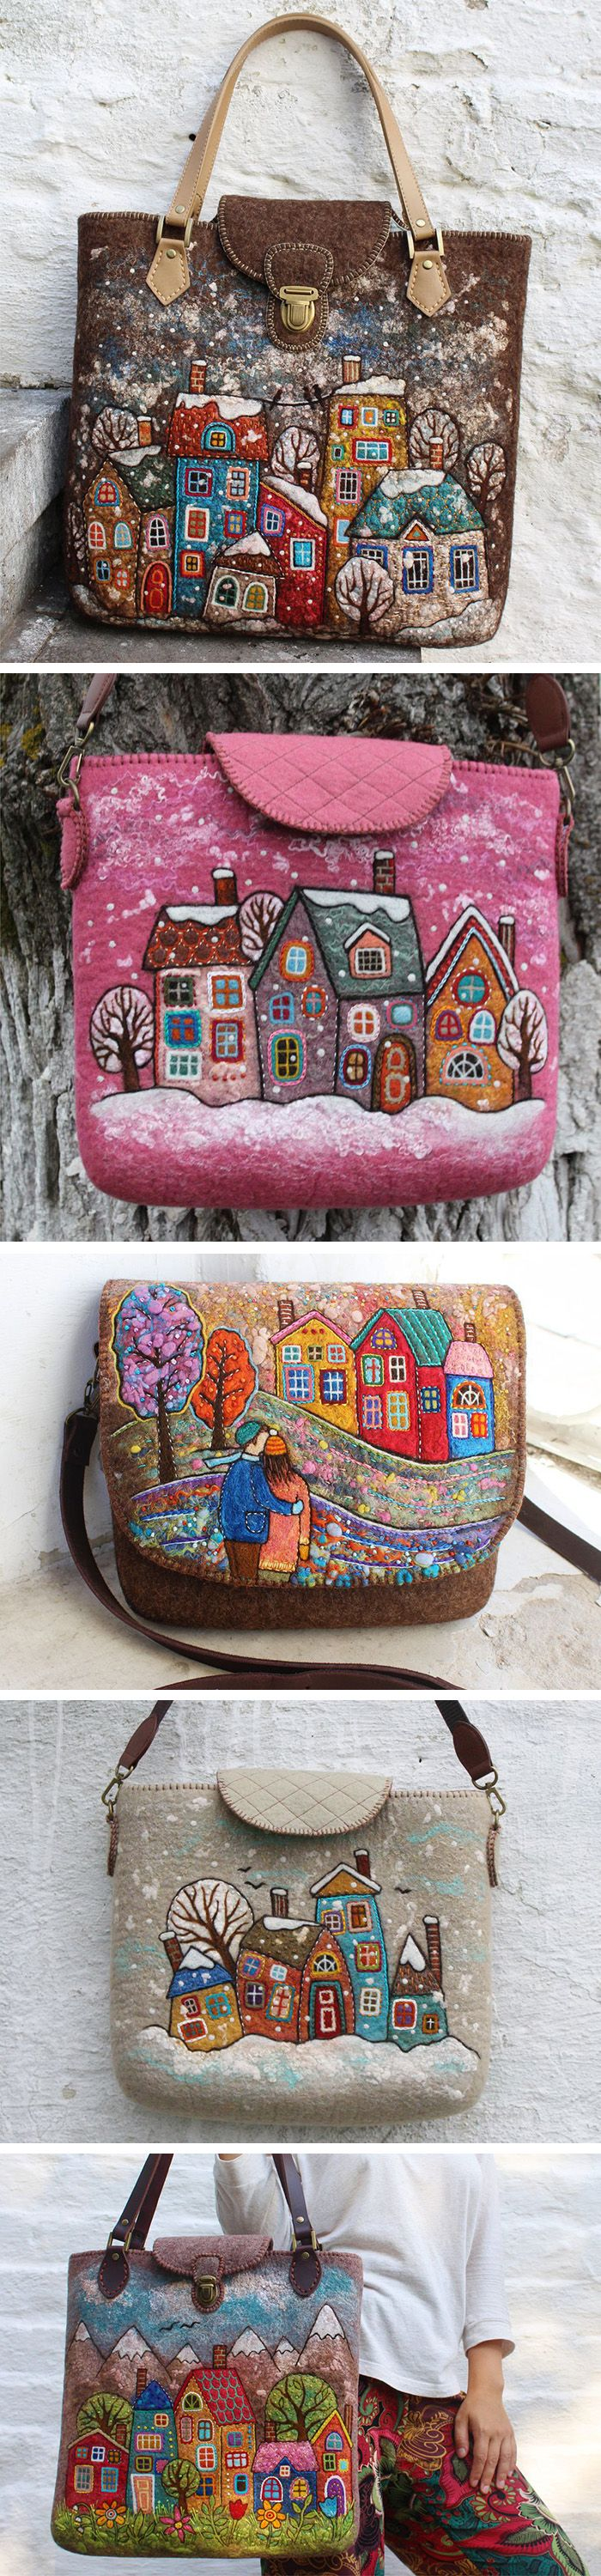 Colorful hand felted and embroidered bags by Natalya Gourina (Top 2017)